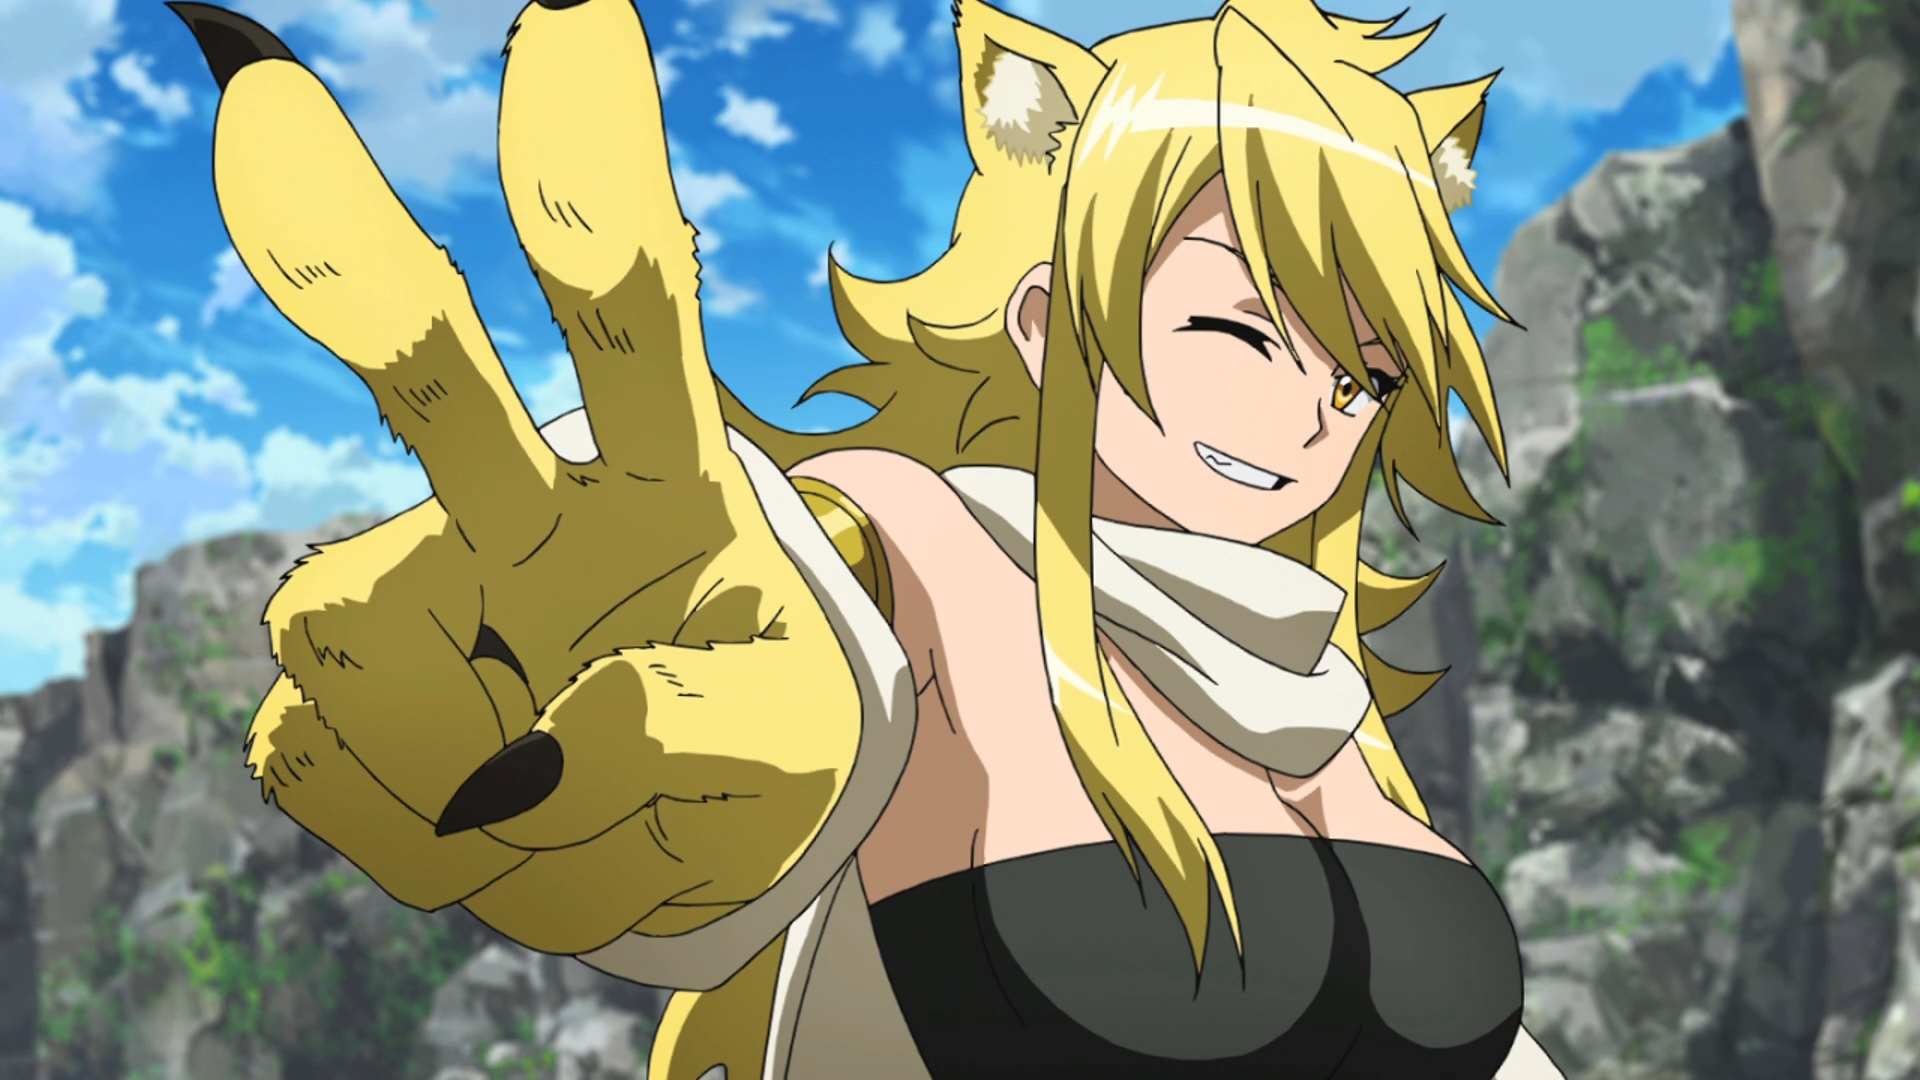 Yang Xiao Long Rwby Vs Leone Akame Ga Kill Spacebattles Forums